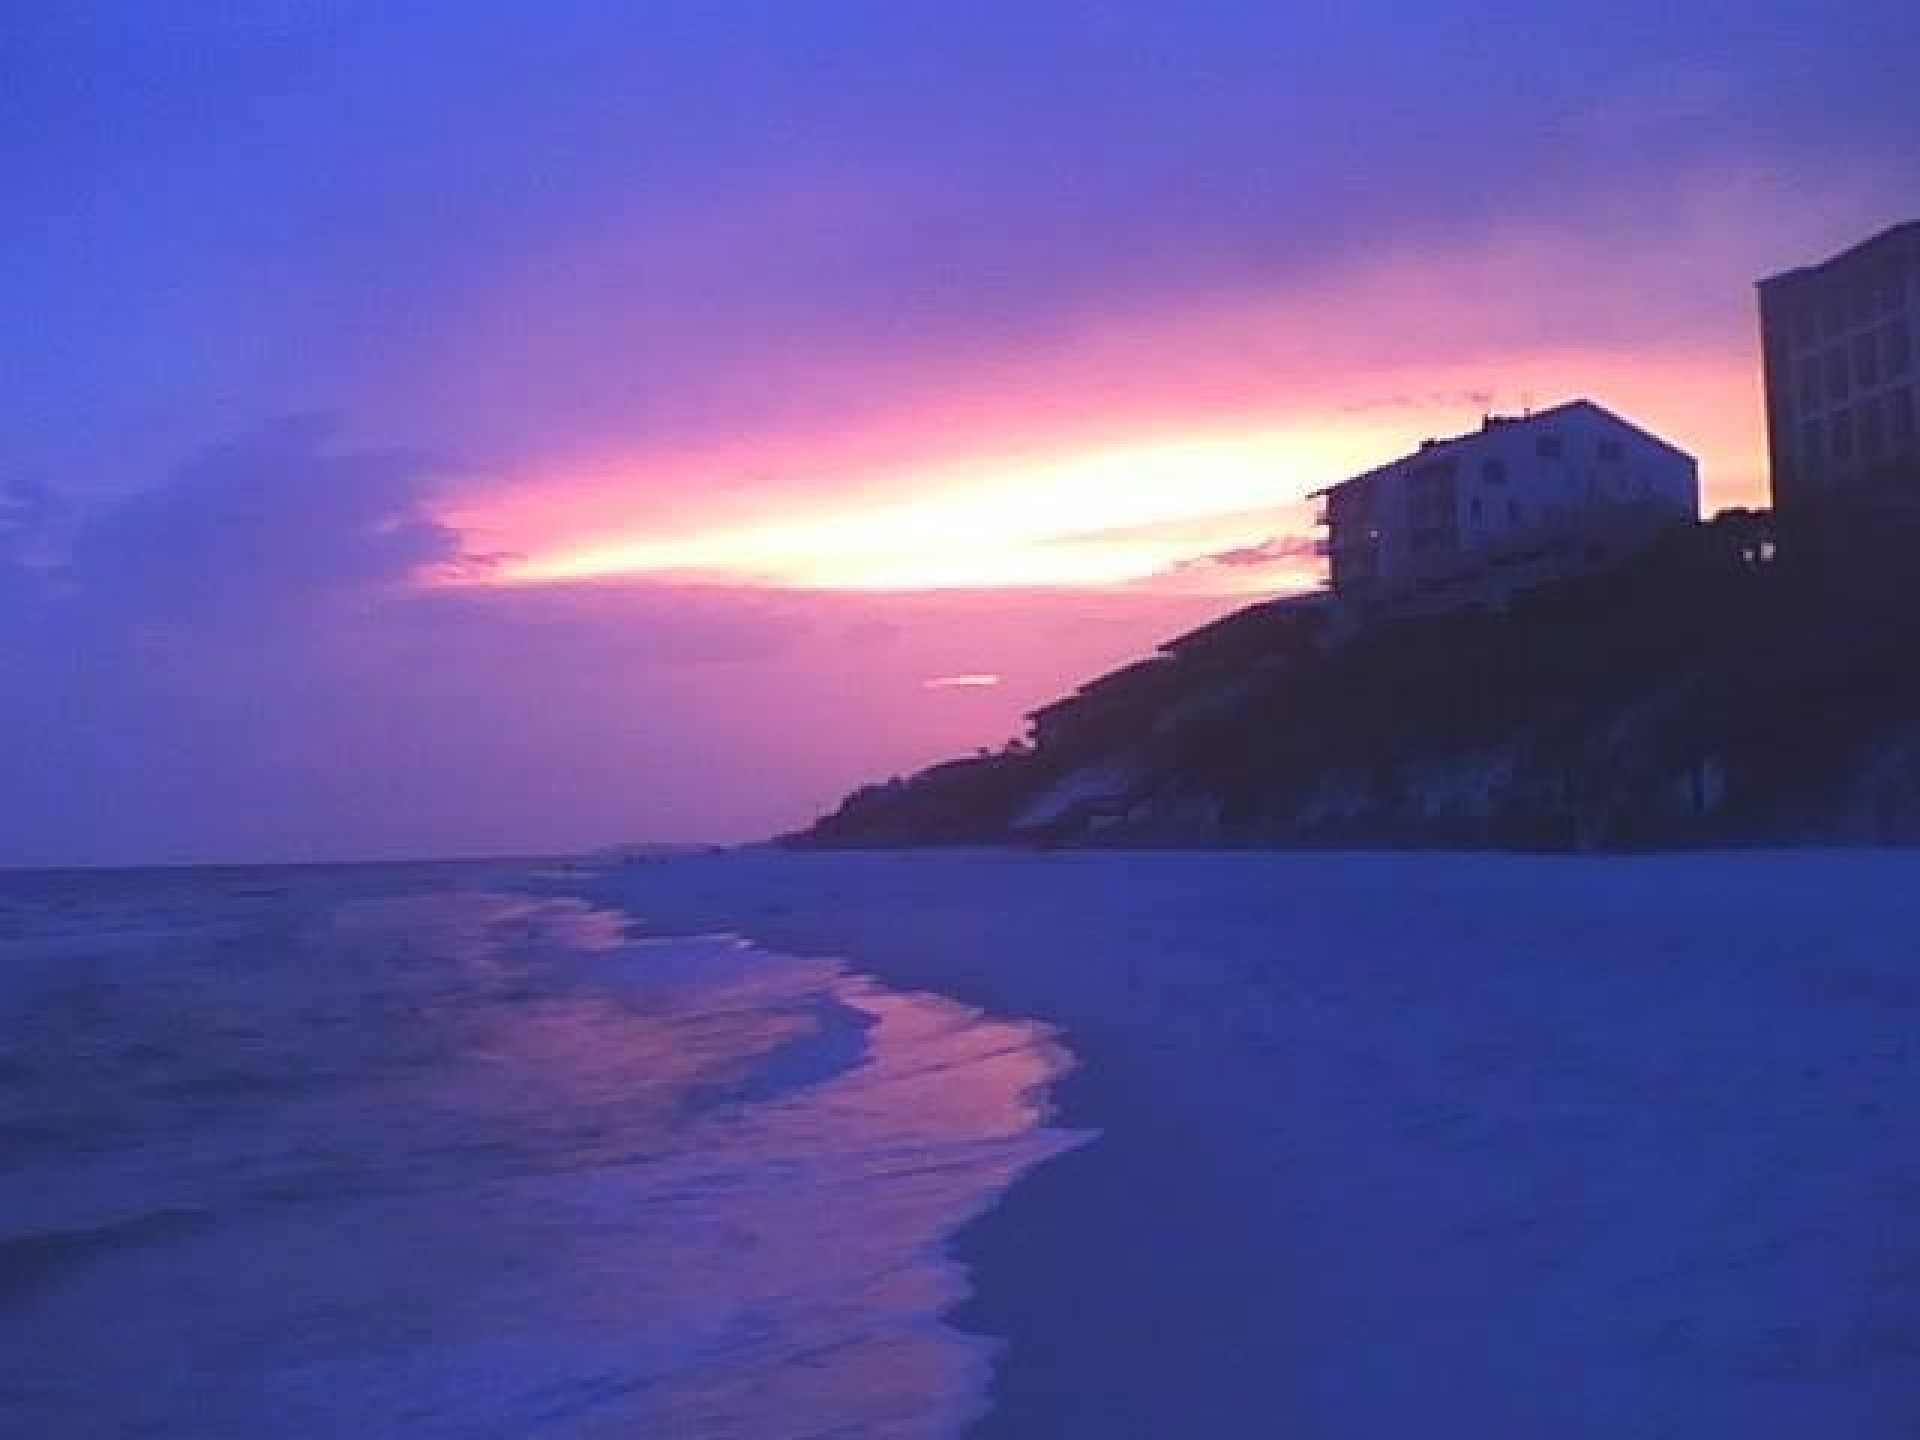 smokymountain's photo of Destin